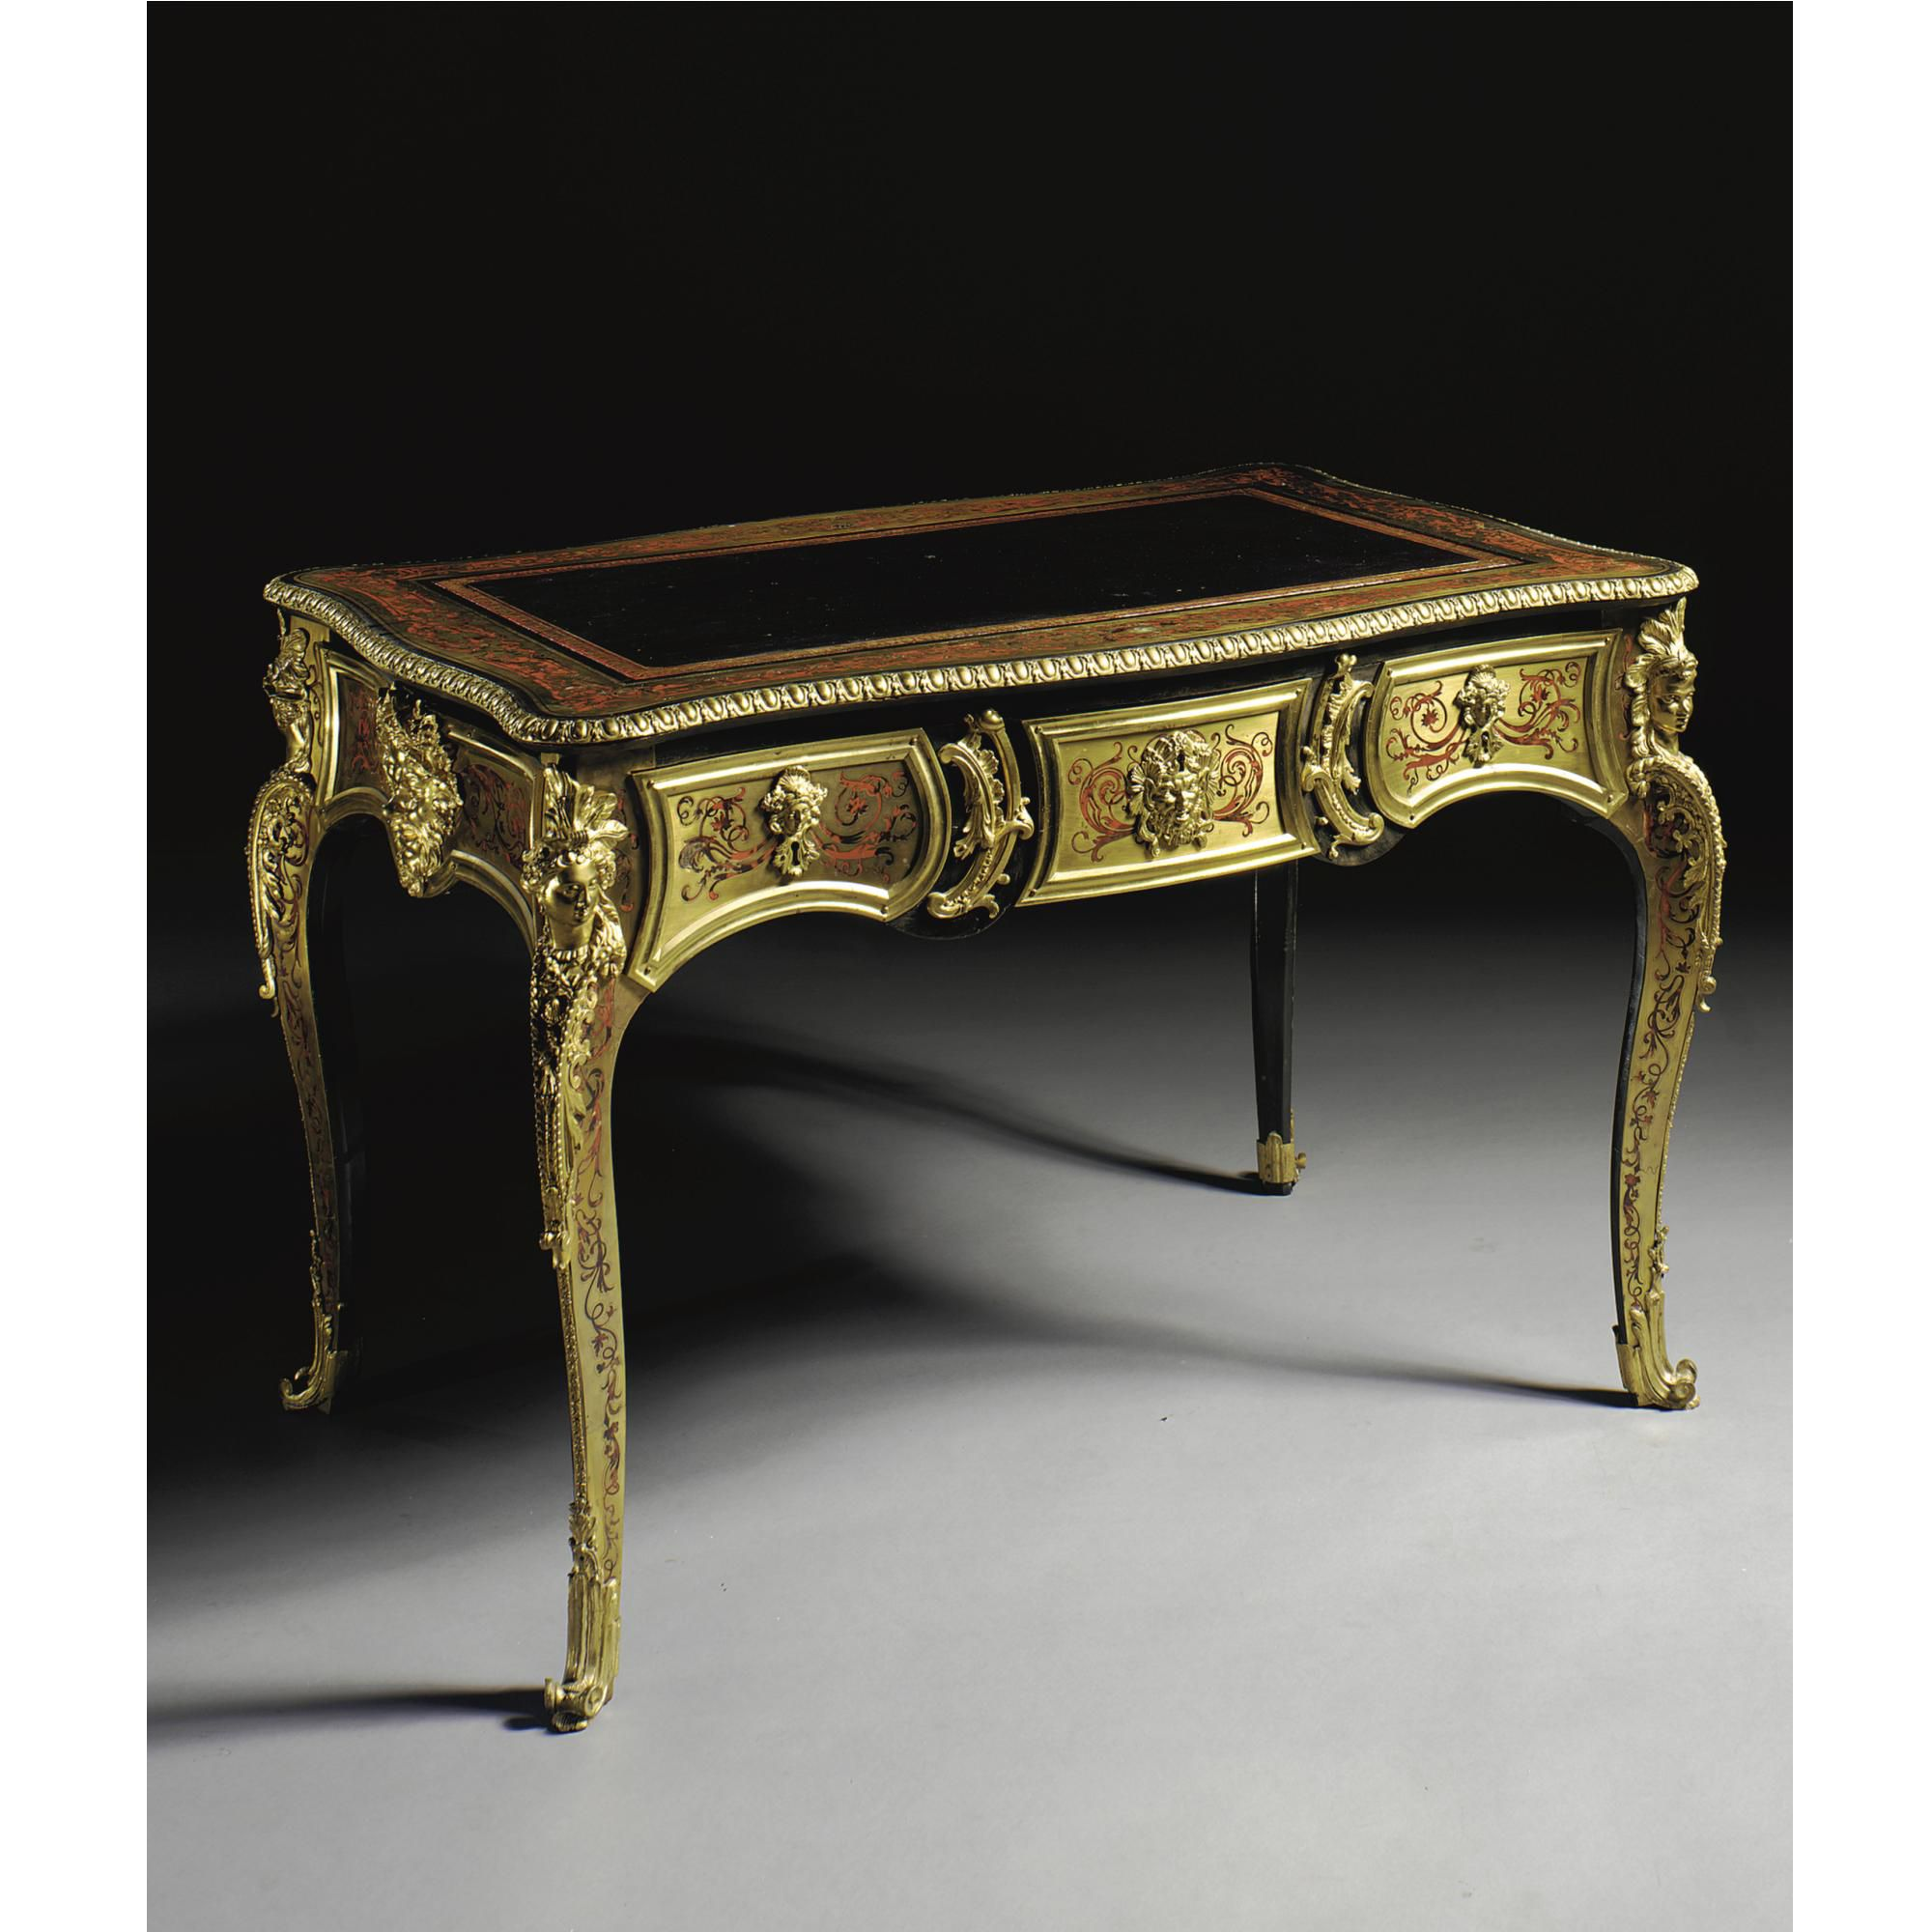 19th century furniture & sculpture